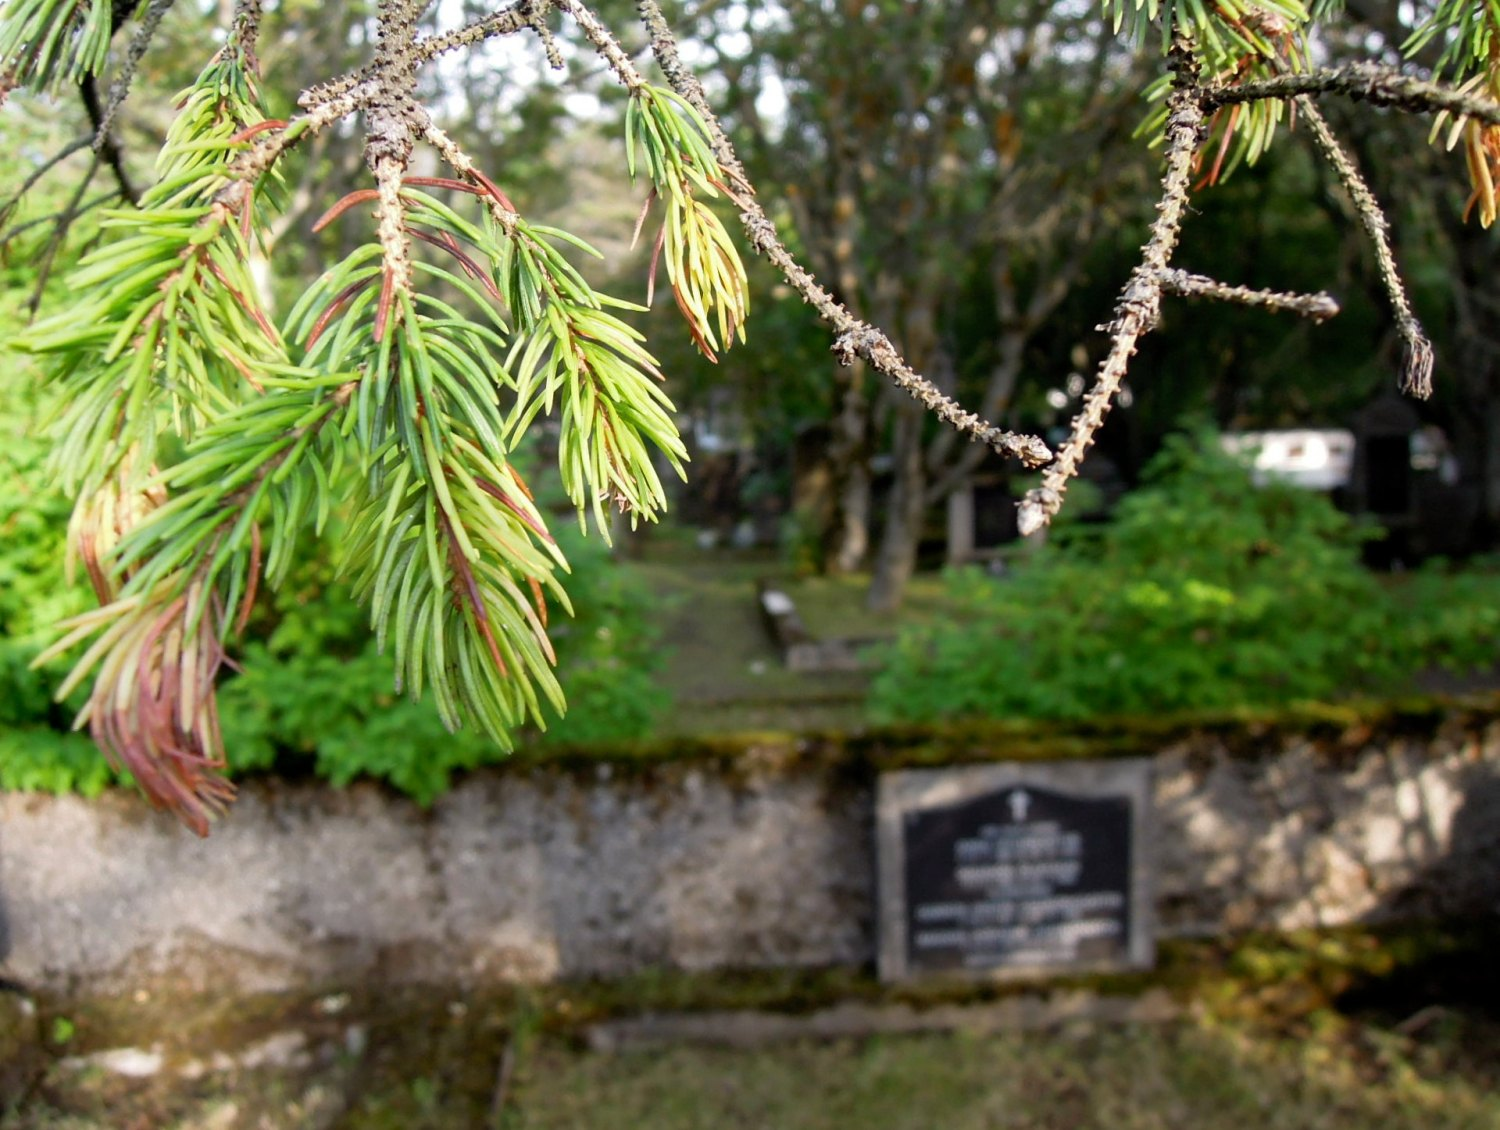 Pine branches overhanging a plot